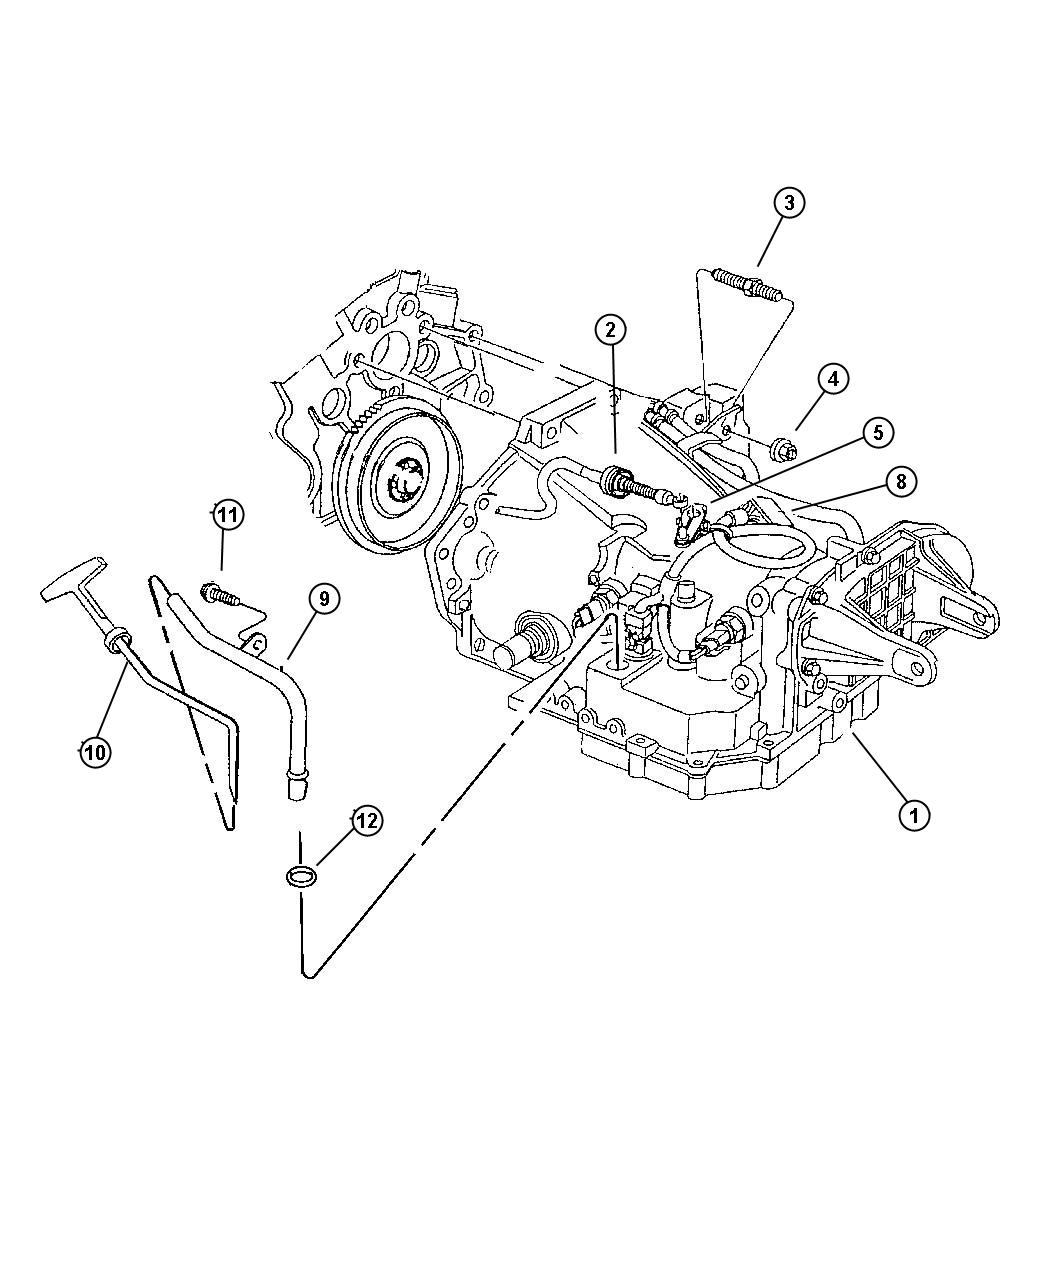 Transaxle Mounting And Misc. Parts Automatic Transaxle, (DGX)